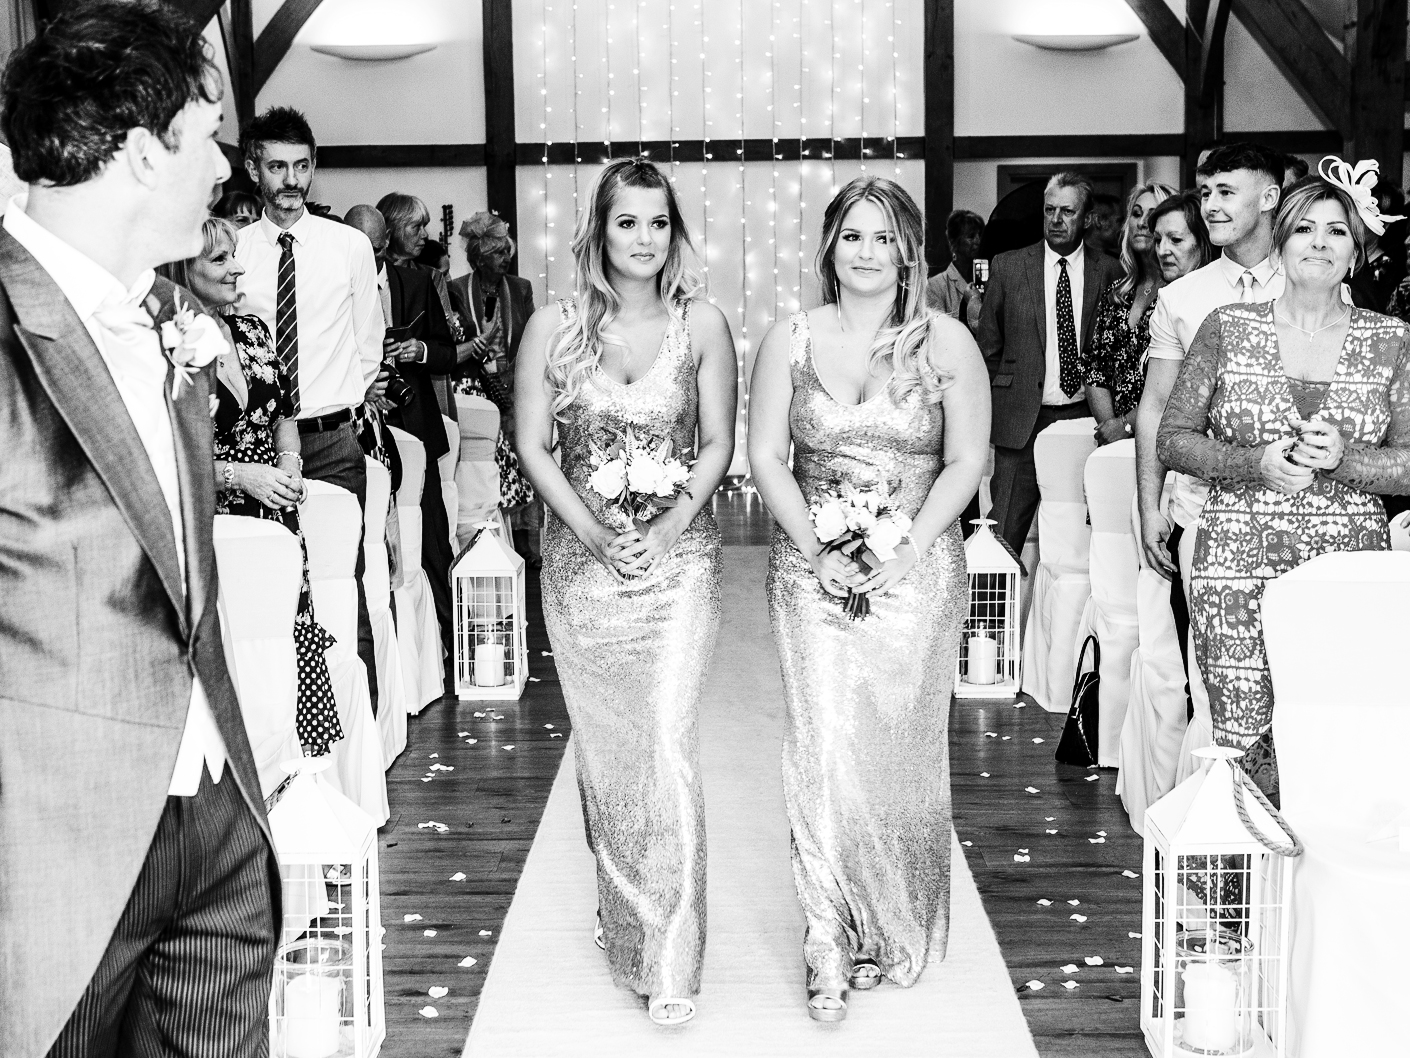 photography-of-the-bridesmaids-at-the-wedding-ceremony-at-Sandhole-Oak-Barn-Congleton-Cheshire